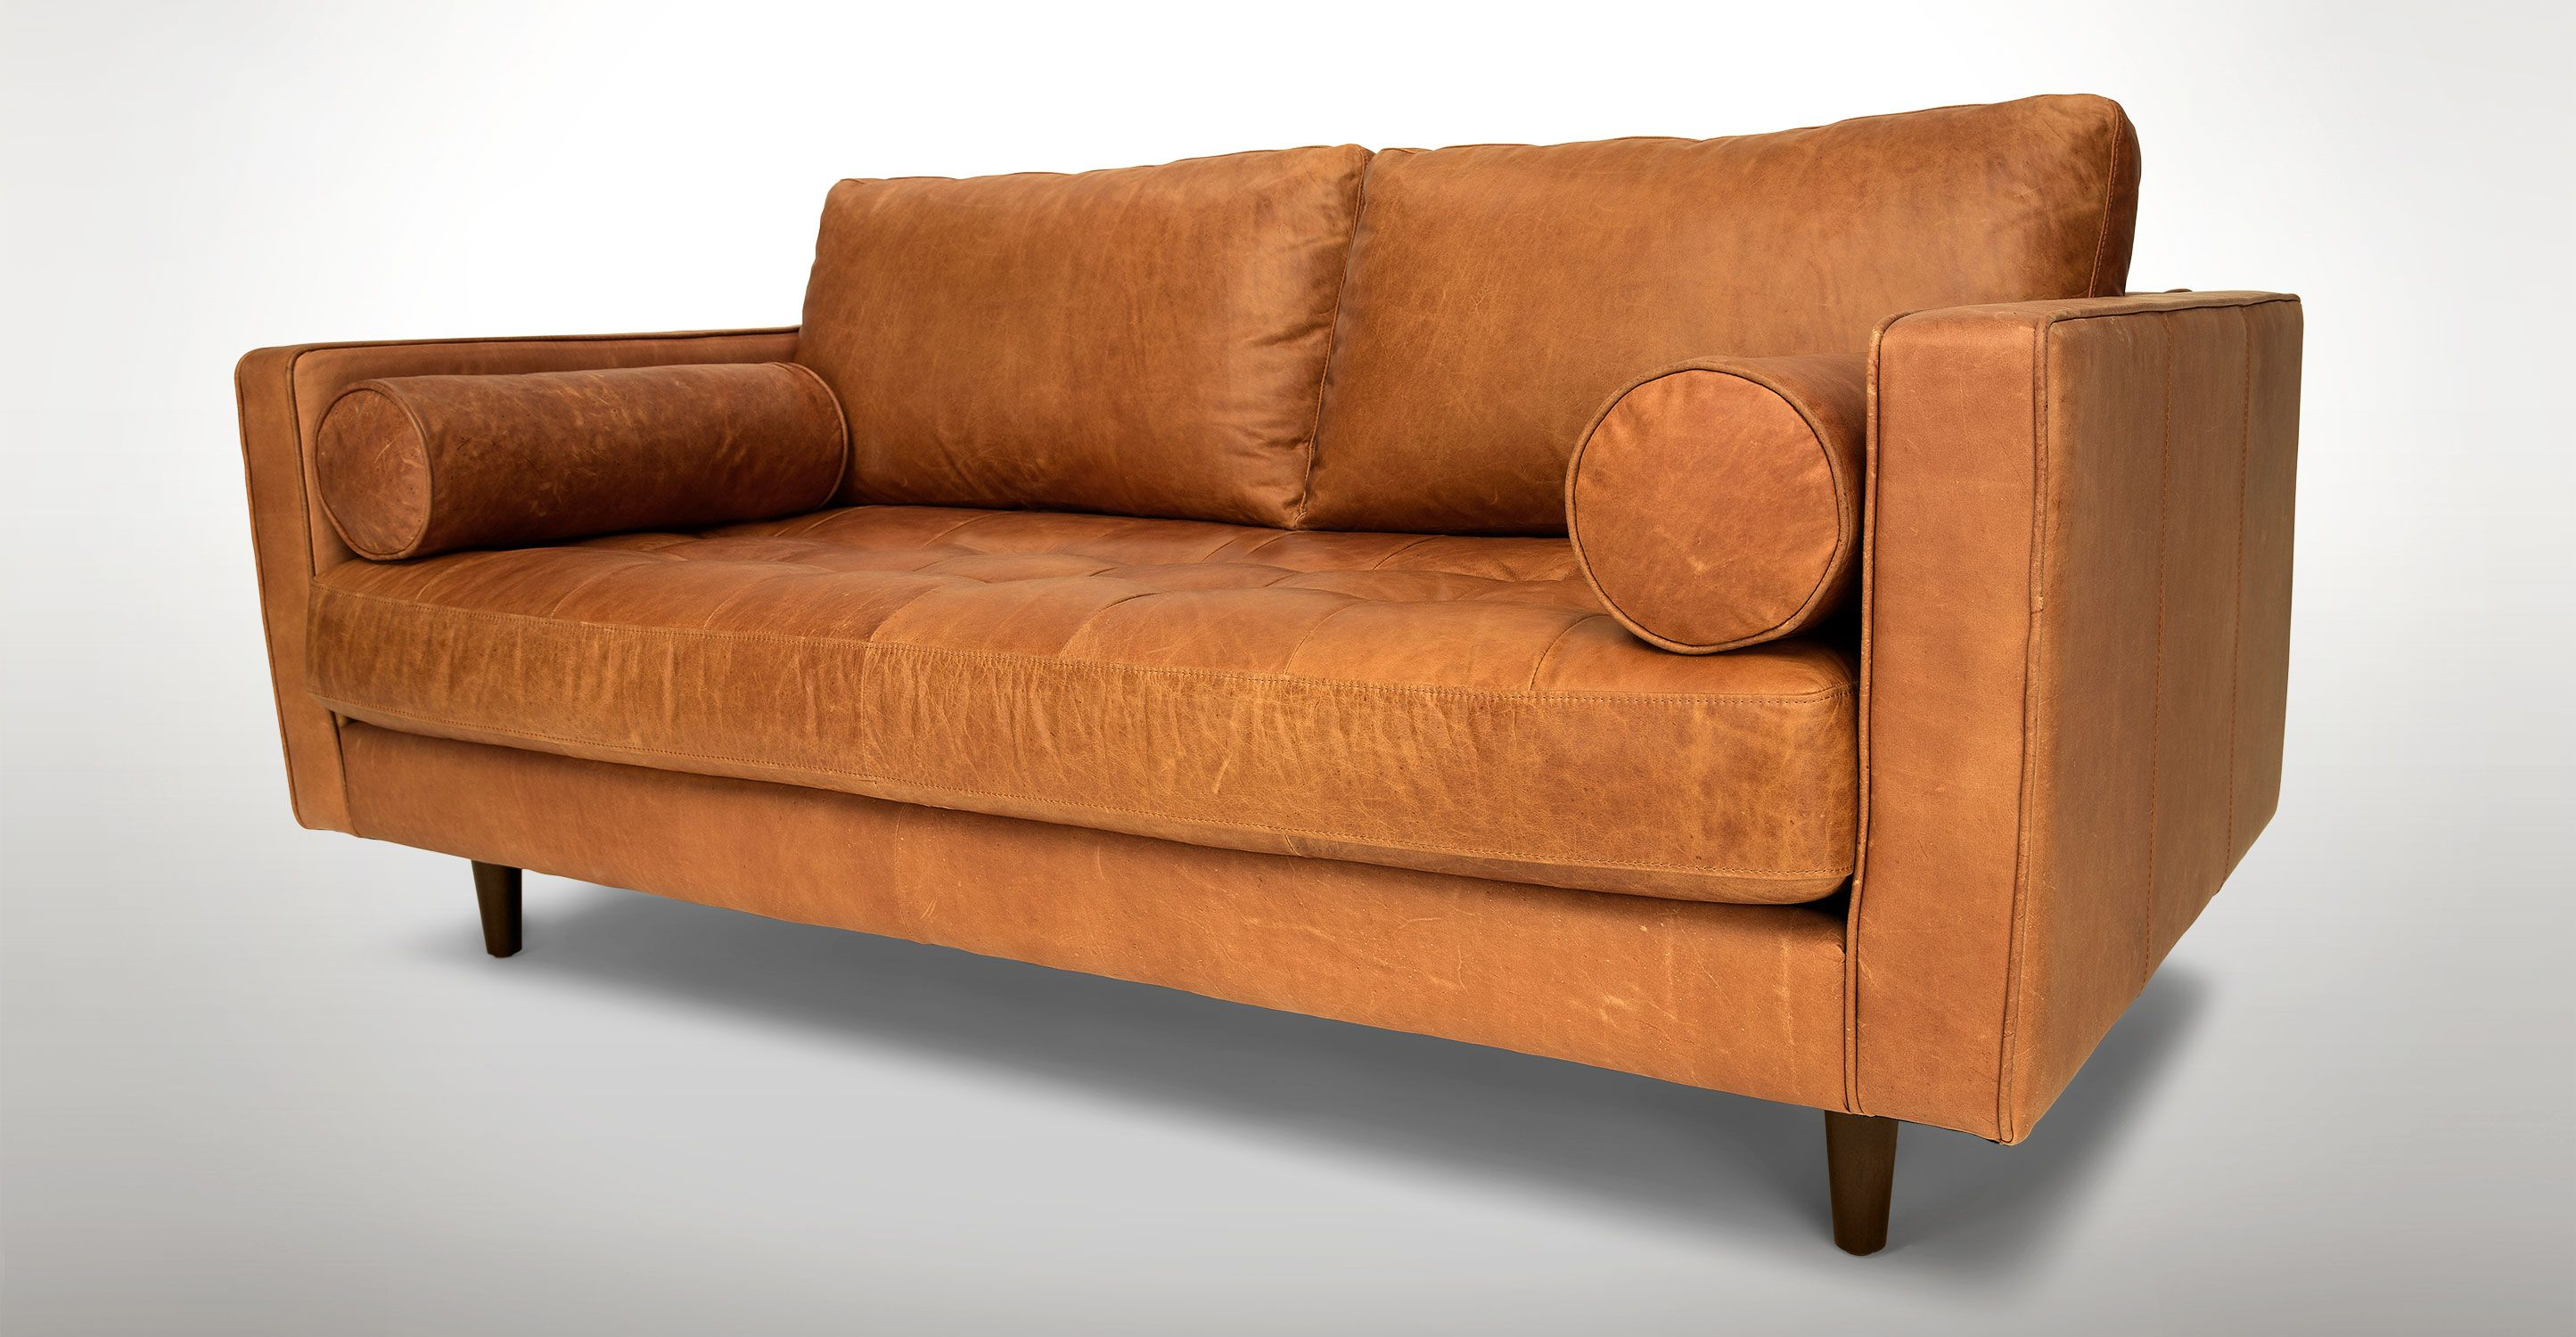 Tan Brown Leather Sofa With Steel Legs